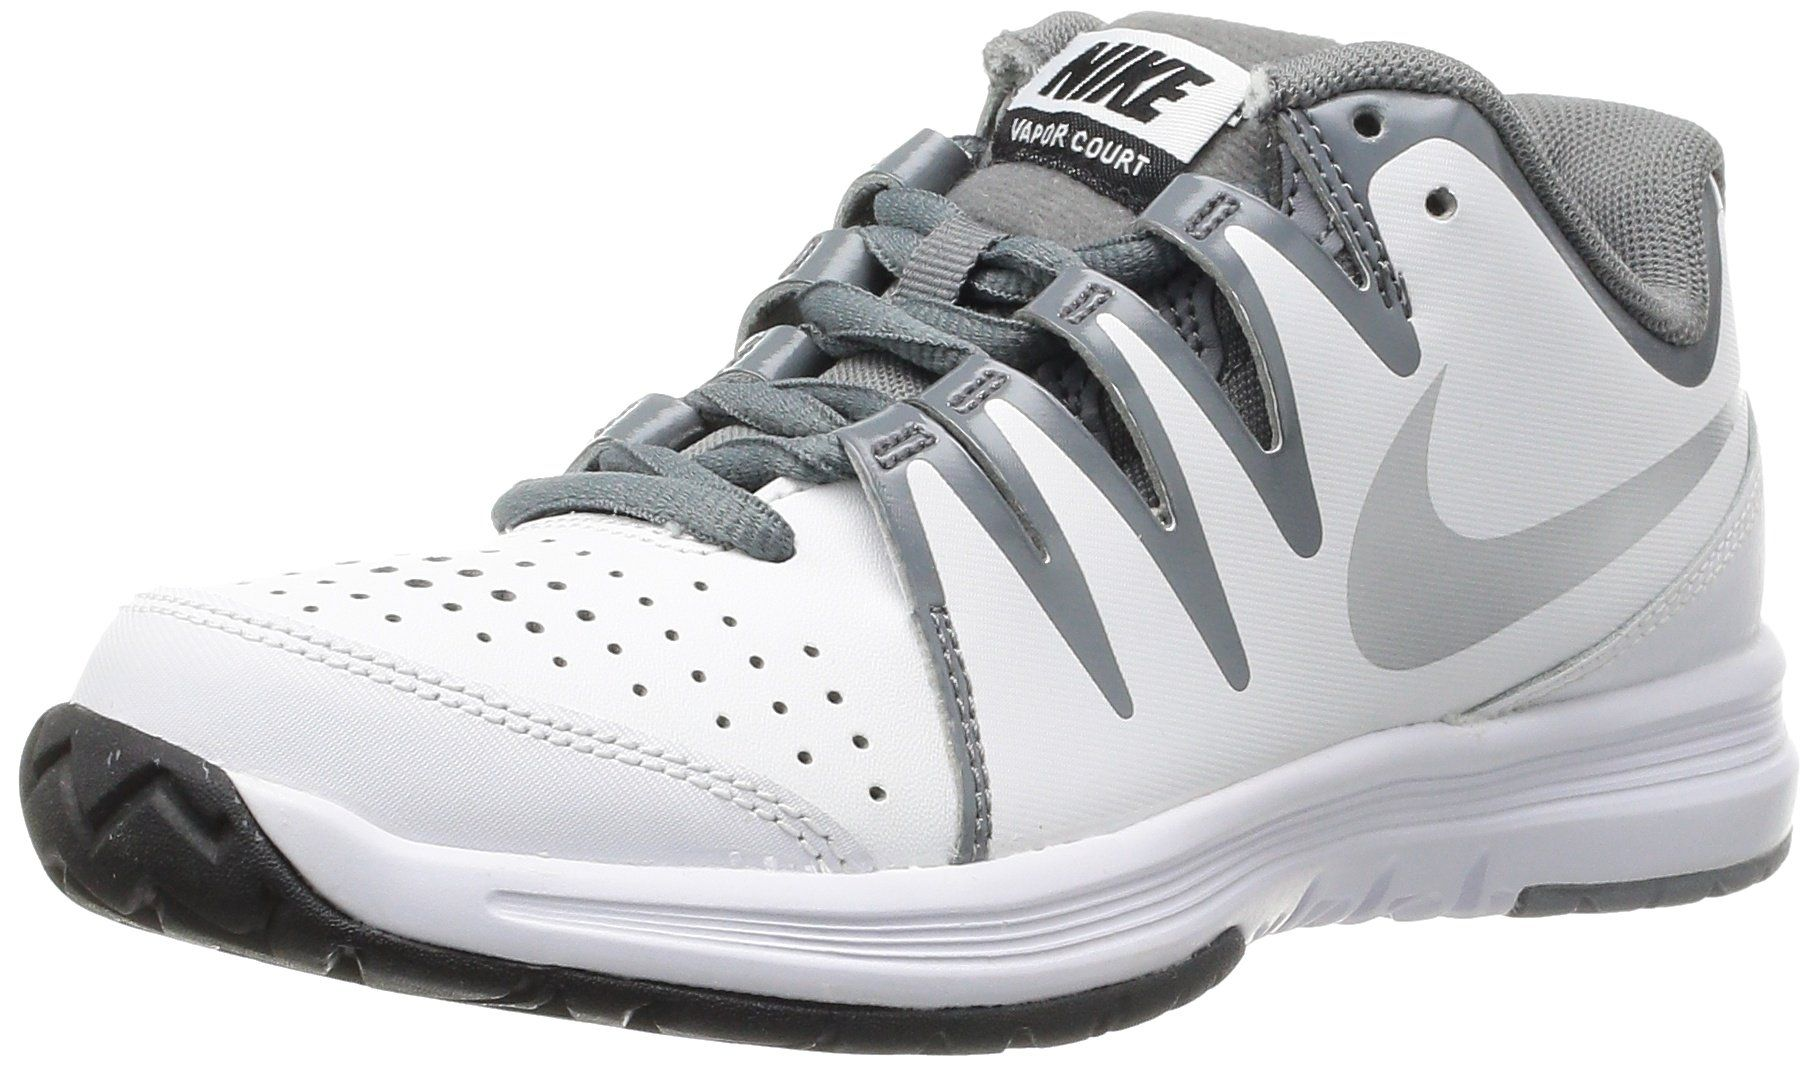 Nike Womens Wmns Vapor Court White Metallic Silver Cool Grey 12 M Us Model Number 631713100 Gend Nike Shoes Women Womens Athletic Shoes Nike Tennis Shoes